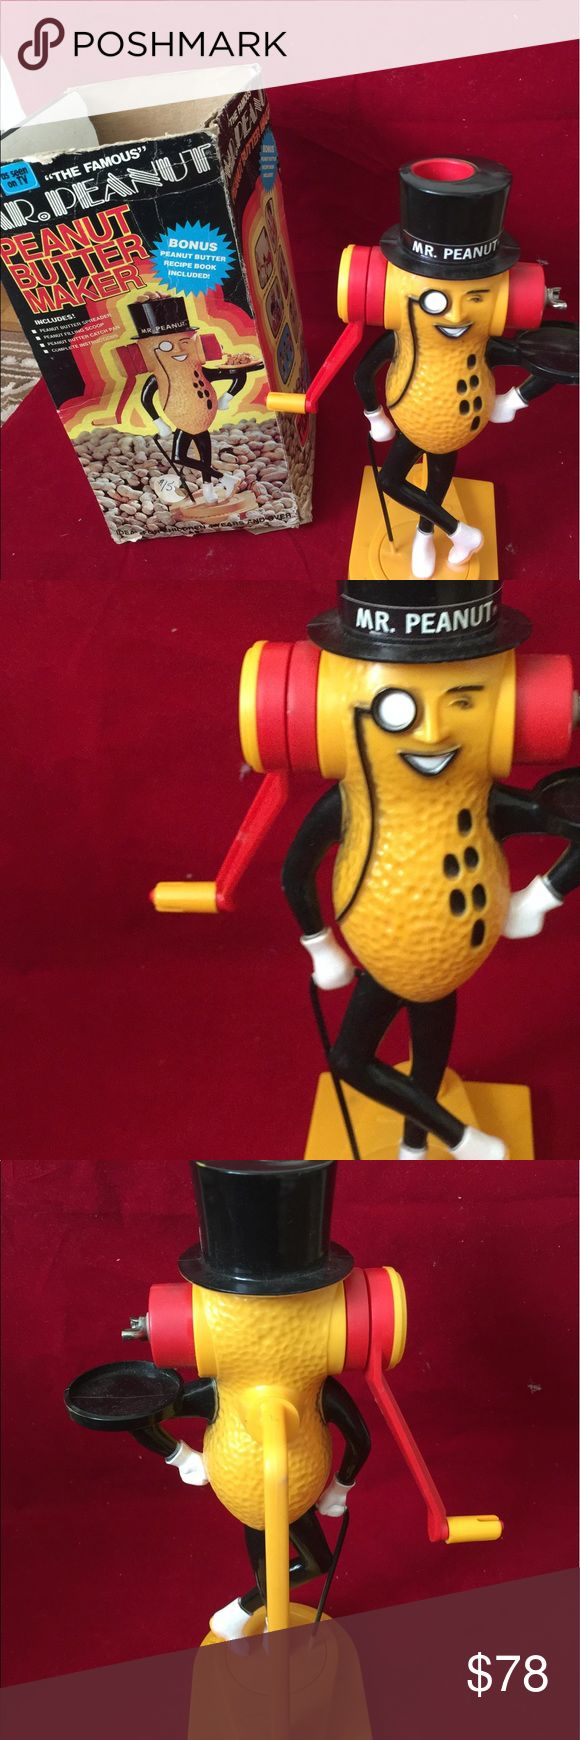 PLANTERS Mr.PEANUT BUTTER MAKER ACTION FIGURE WOOW ORIGINAL PEANUT BUTTER MAKER!1PLANTERS Mr.PEANUT BUTTER MAKER ACTION FIGURE  Actual size.Features all you need are peanuts. Mr Peanut Other